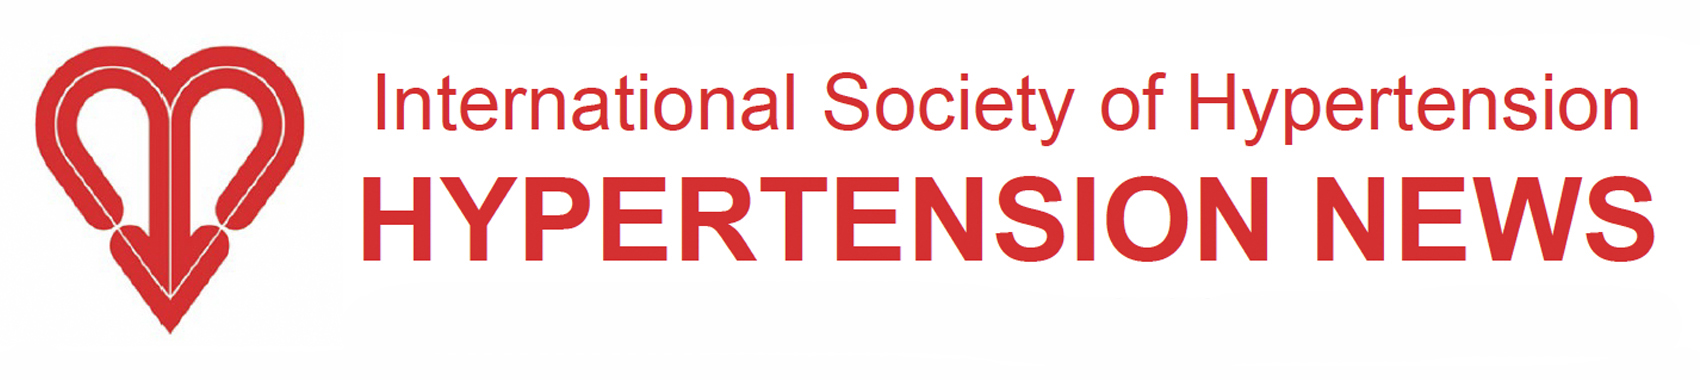 International Society of Hypertension Fellow (ISHF)